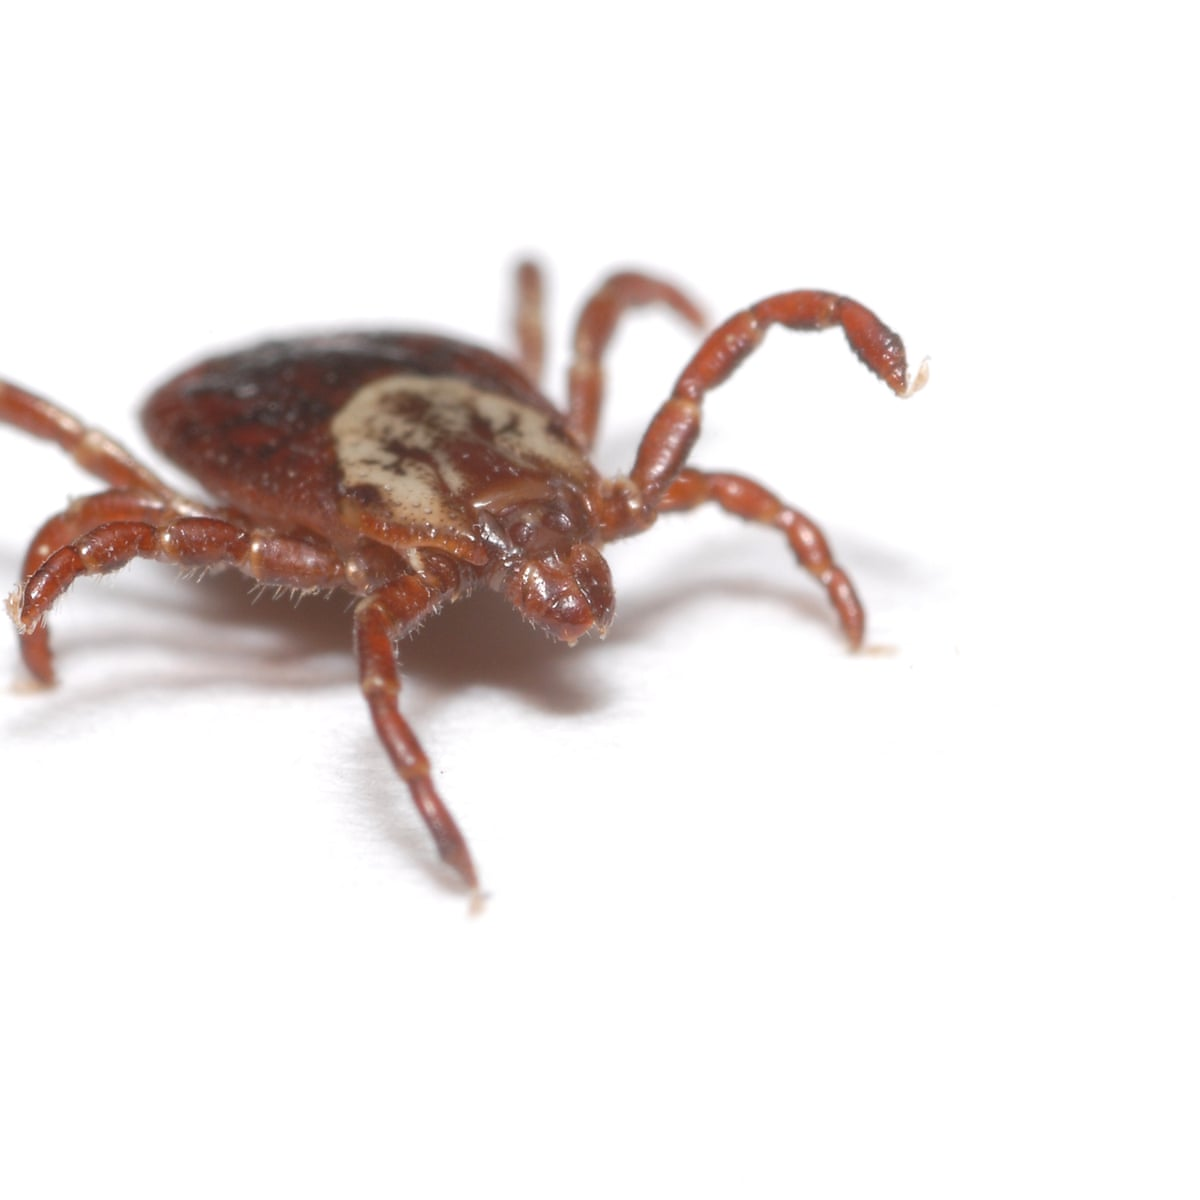 Tick-borne encephalitis found in UK for first time | Society | The Guardian